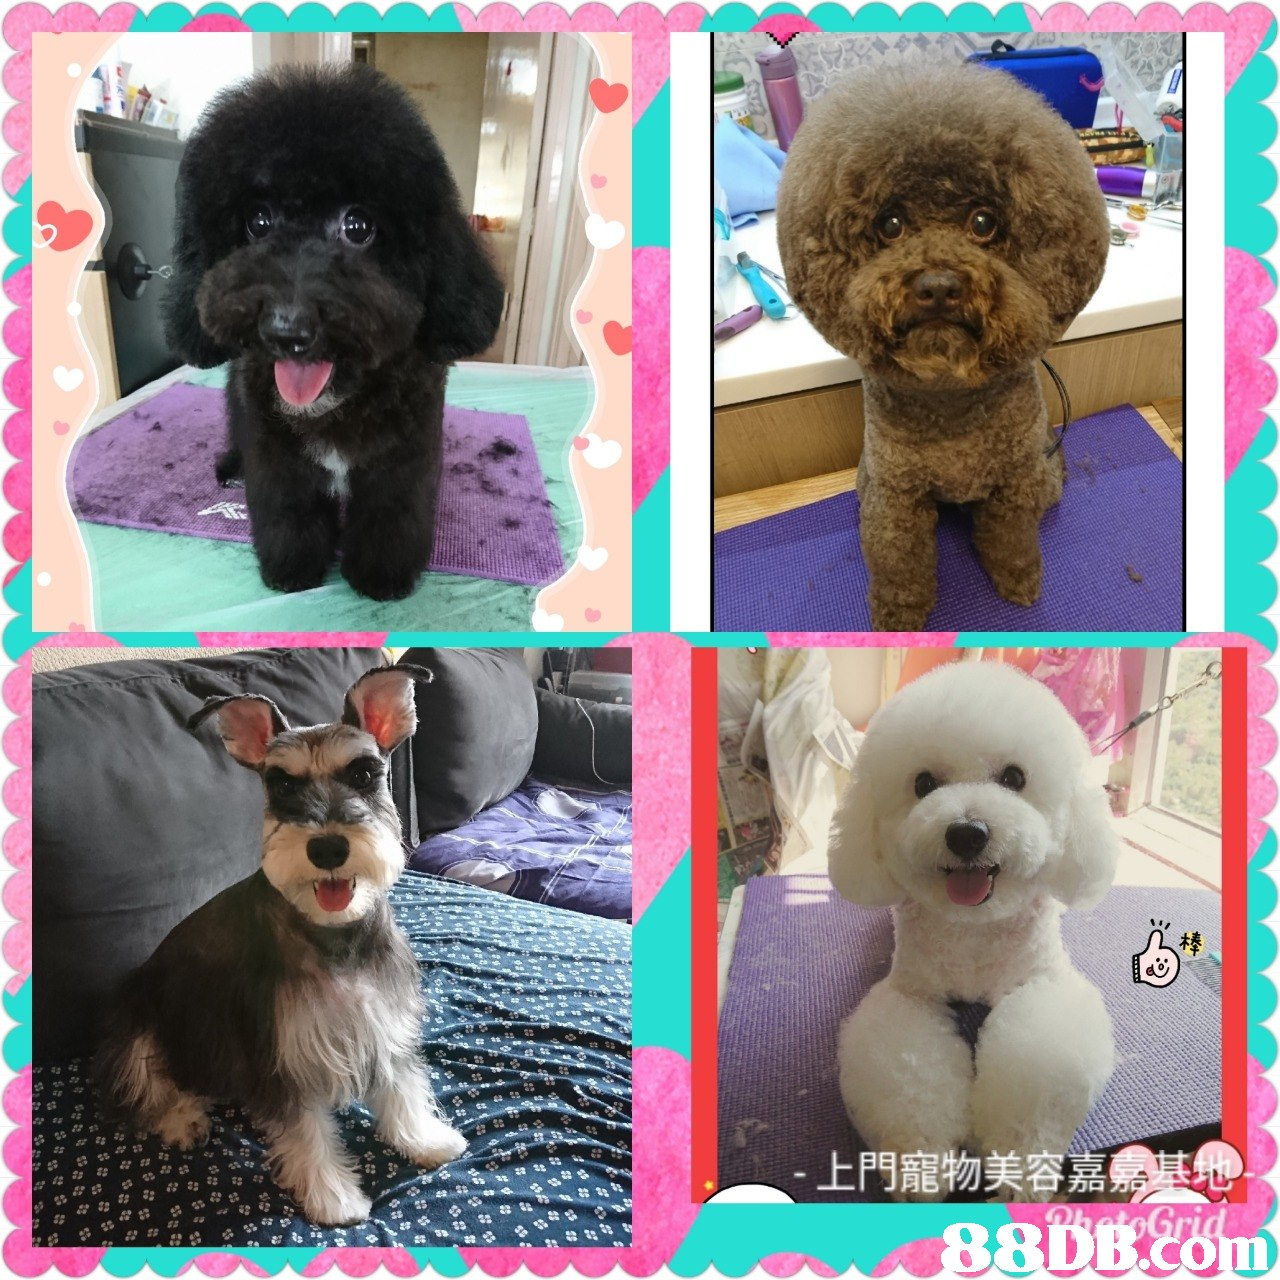 上門寵物美容嘉  dog,dog like mammal,dog breed,dog breed group,poodle